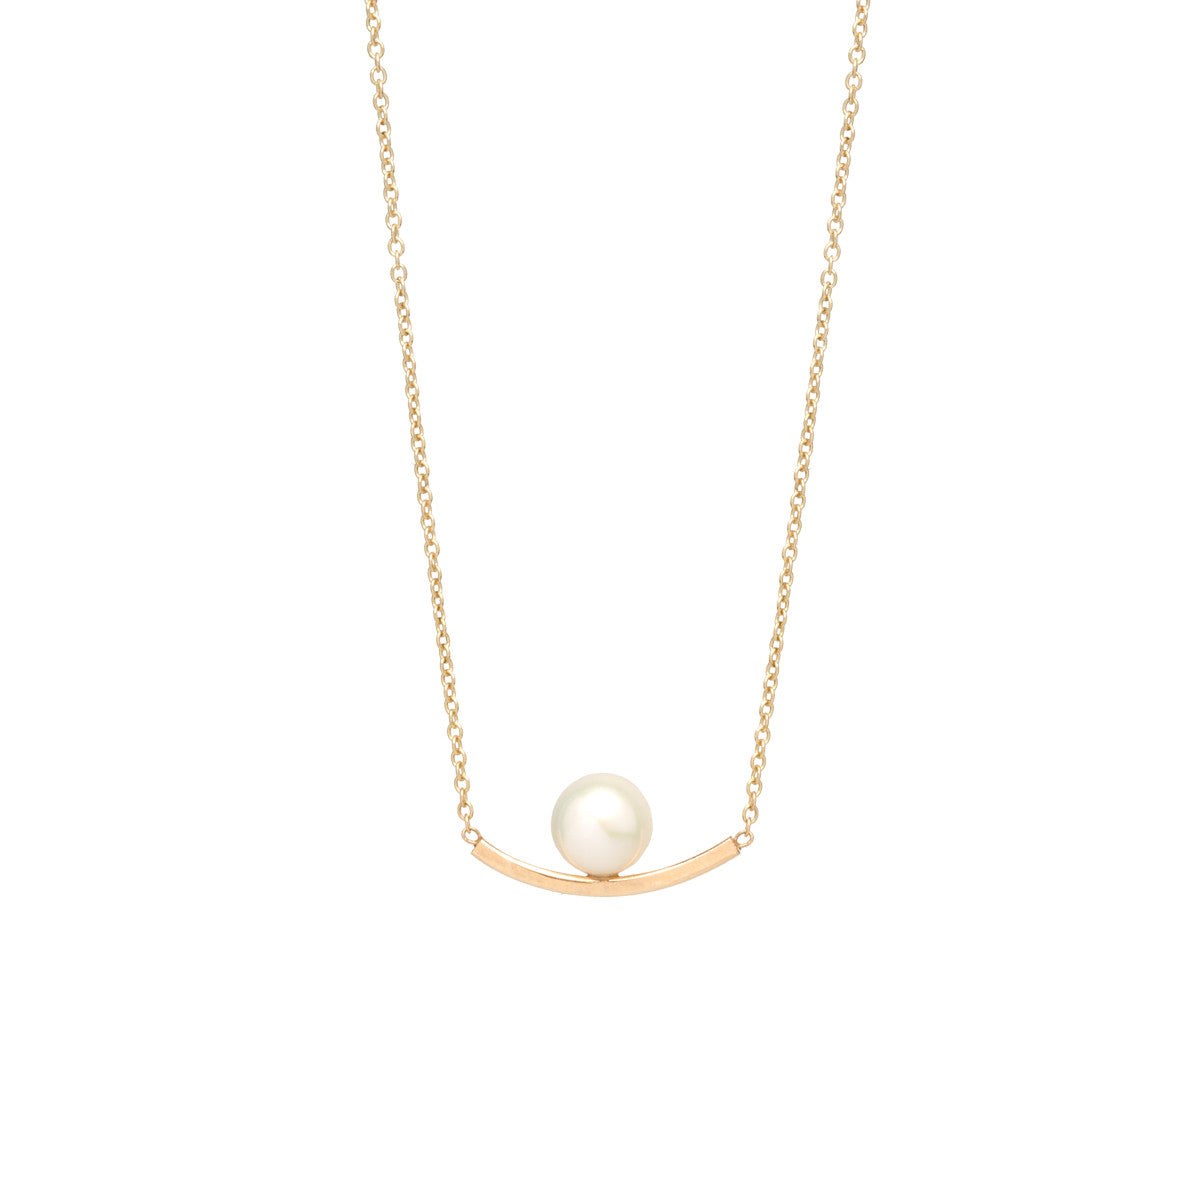 14k curved bar and pearl necklace